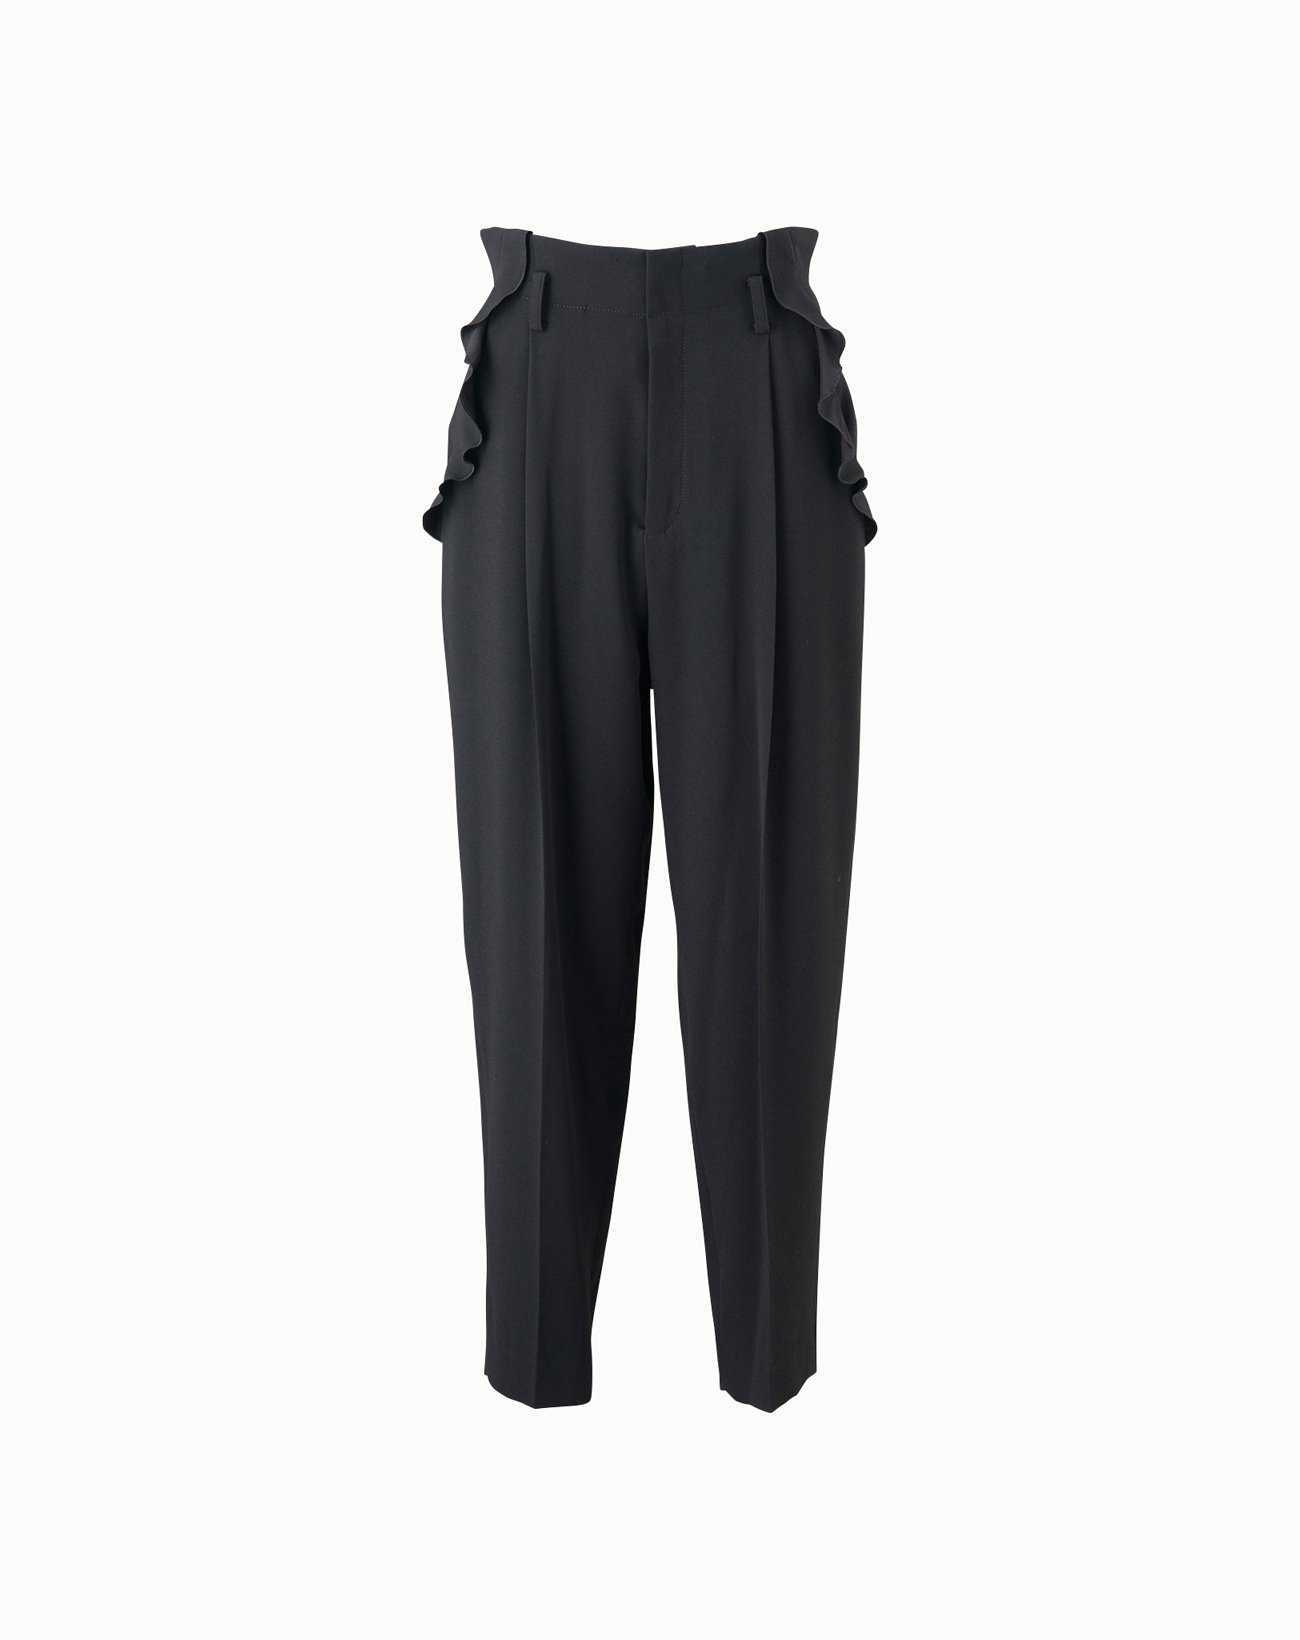 Georgette Pants - Black